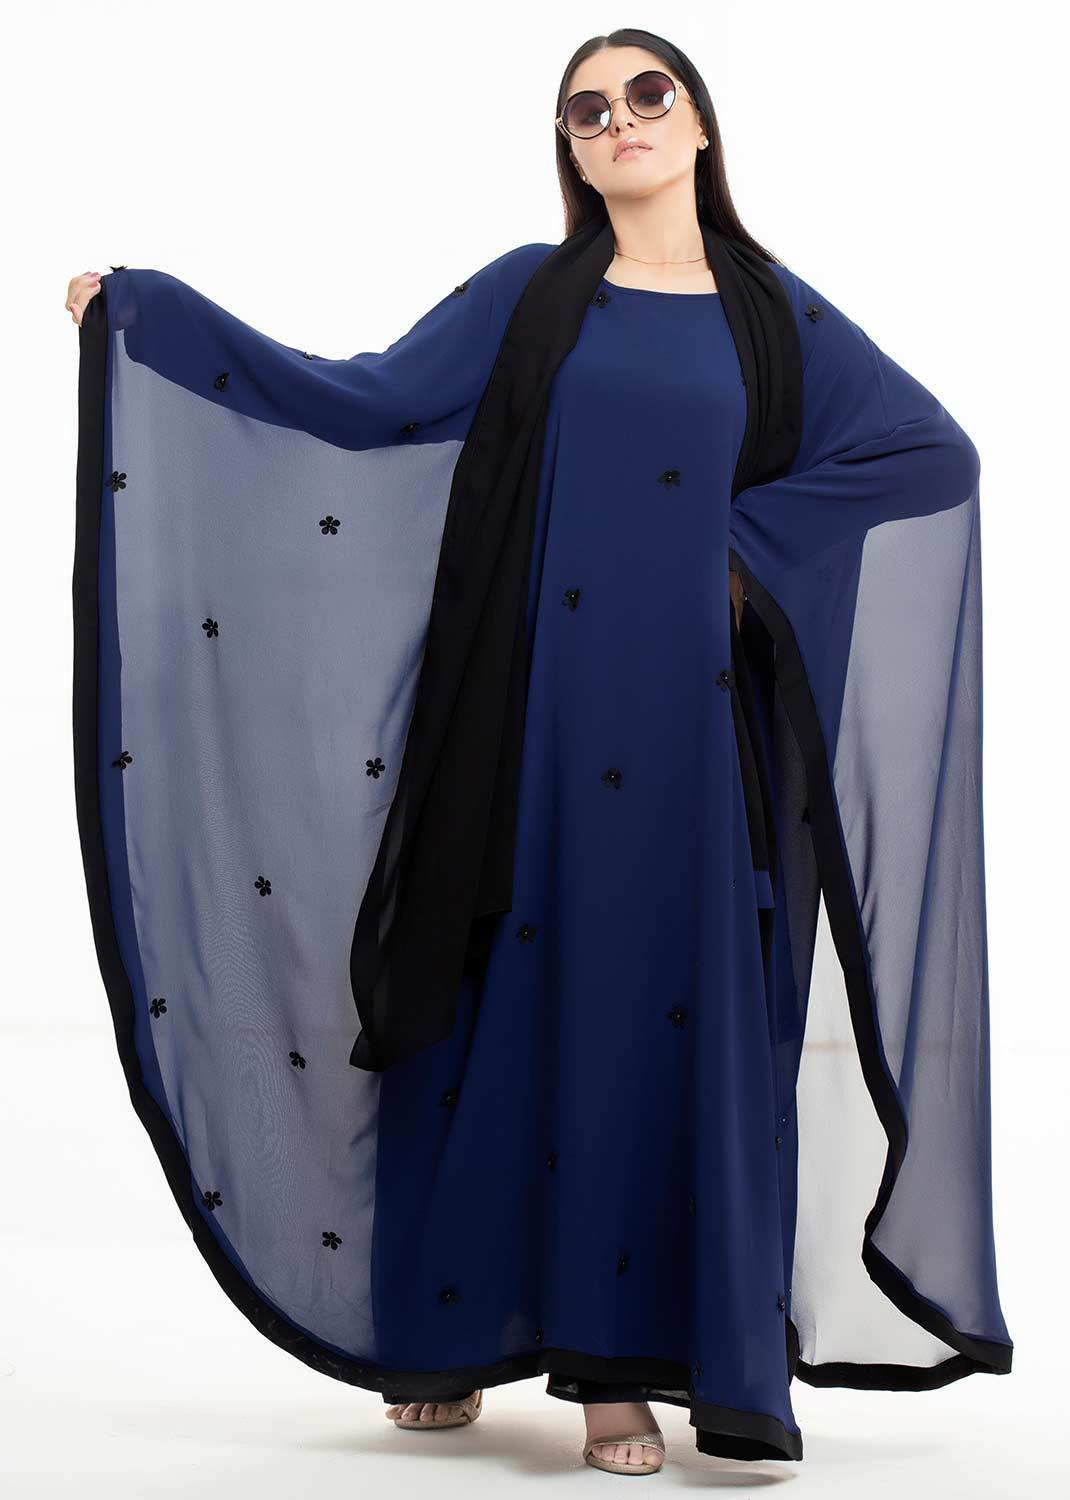 BLUE CHARISMA GOWN BUTTERFLY ABAYA